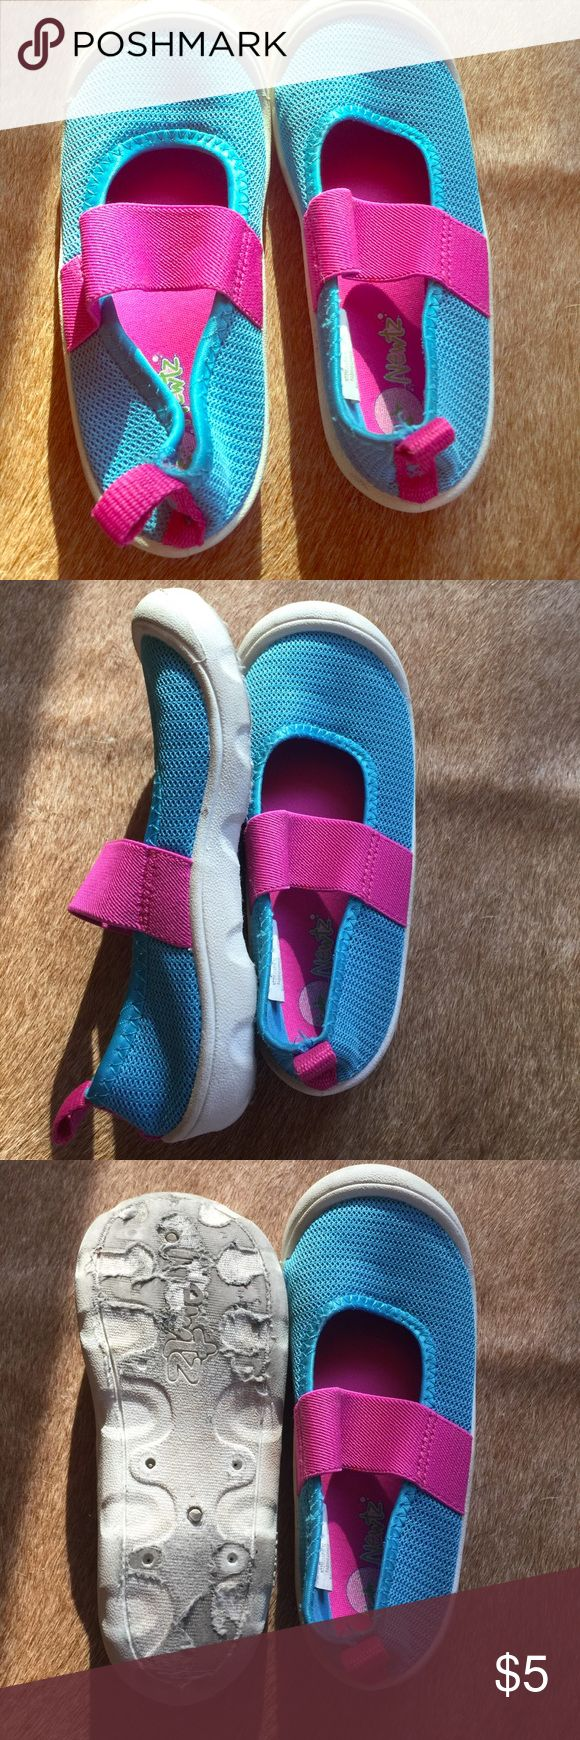 Cute Little Girl Water Shoes for the Beach🍍👙 Newtz water shoes newtz Shoes Water Shoes